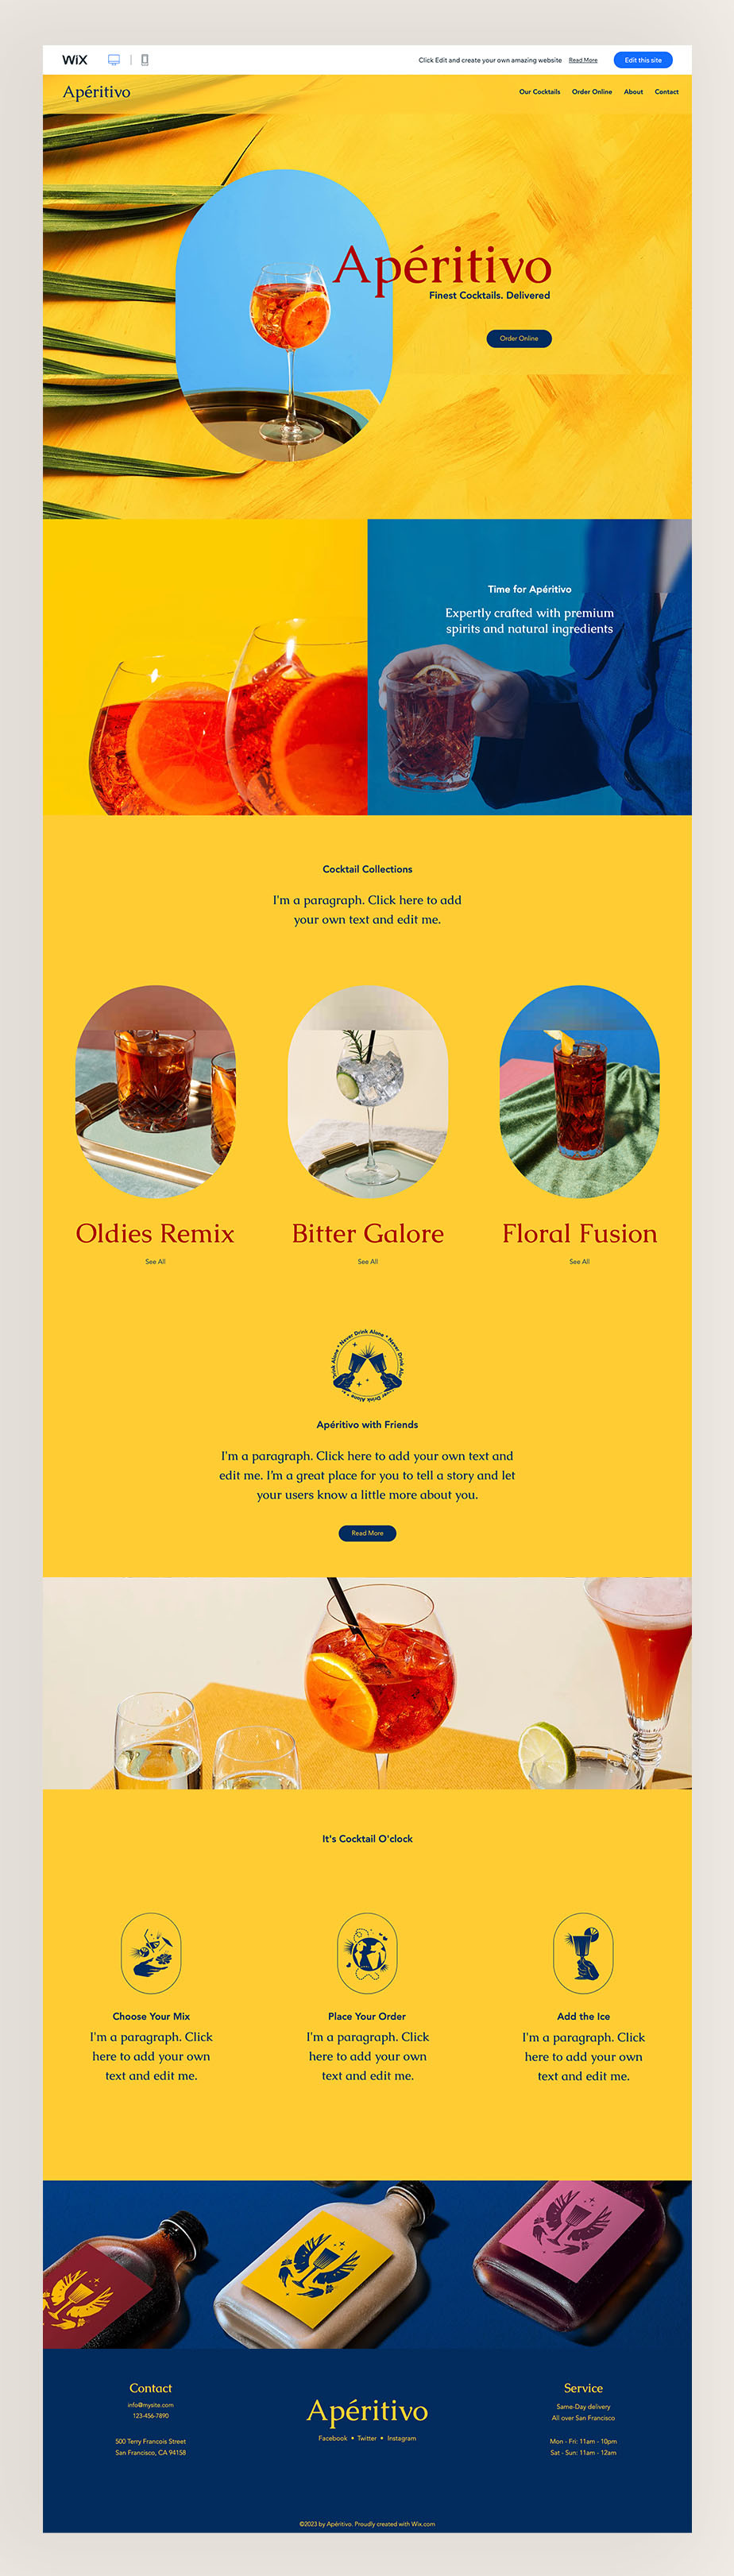 cocktail delivery service wix website template